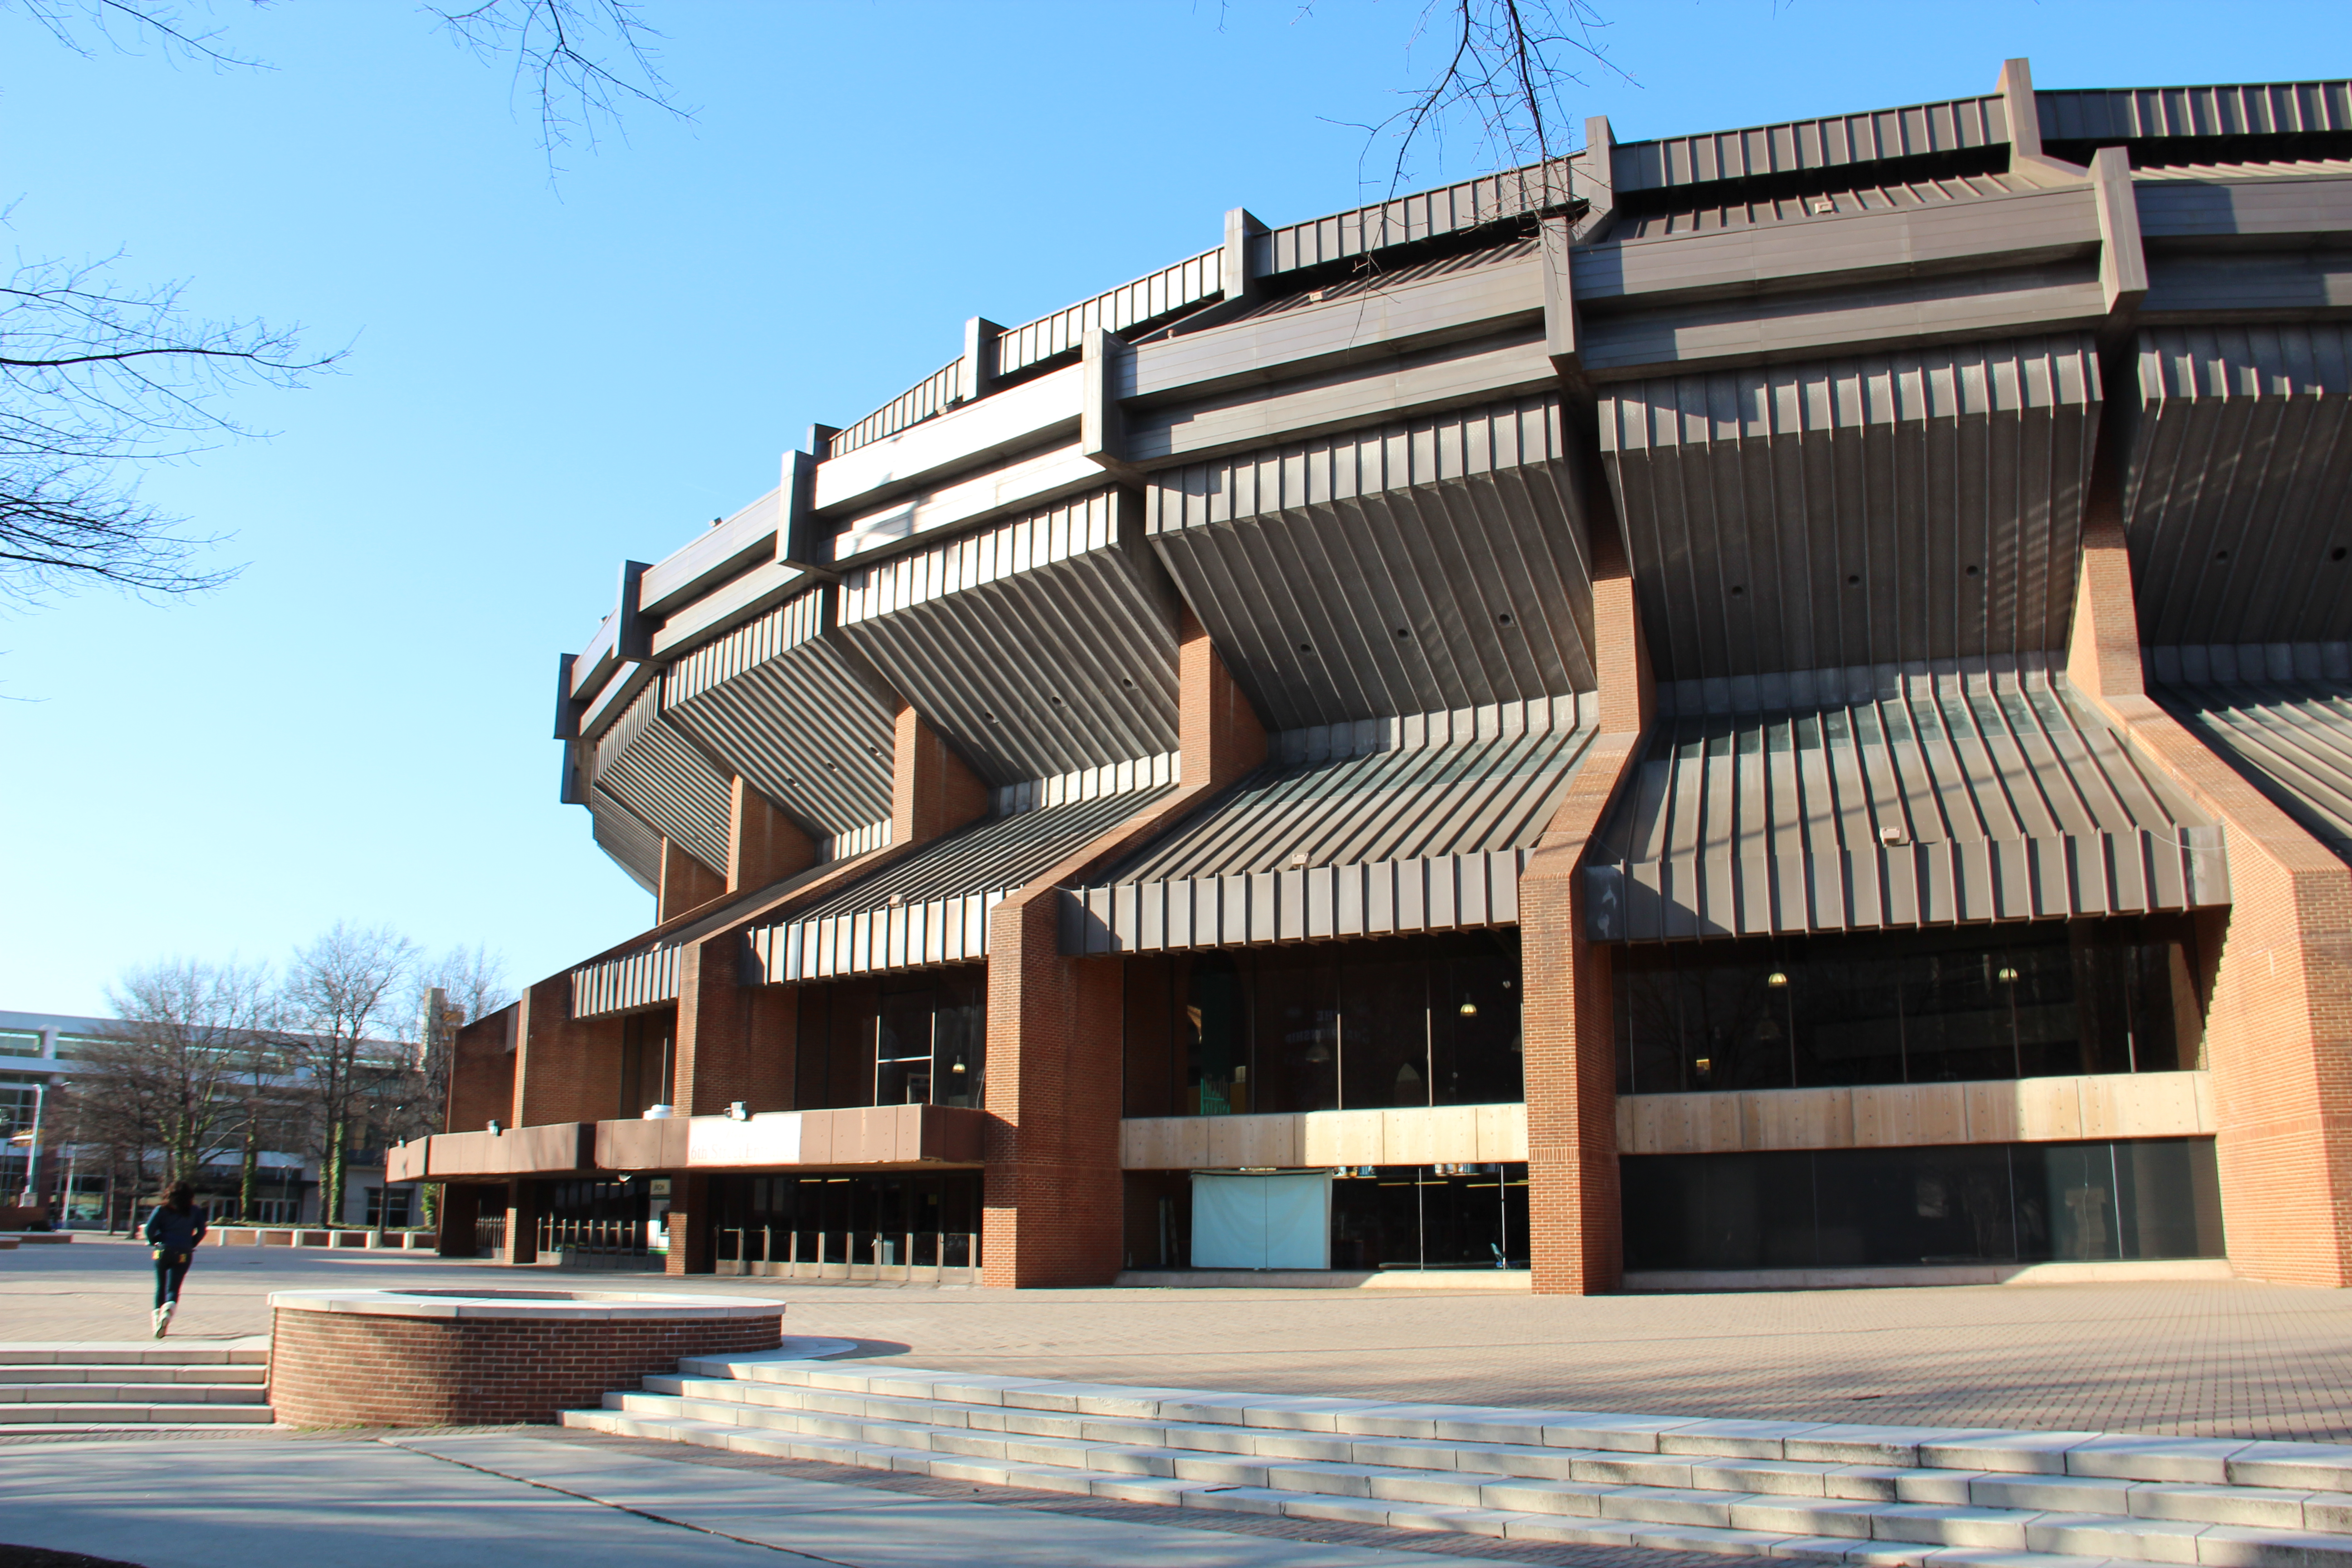 Opinion: Does Richmond Need a New Coliseum? | Architecture ...